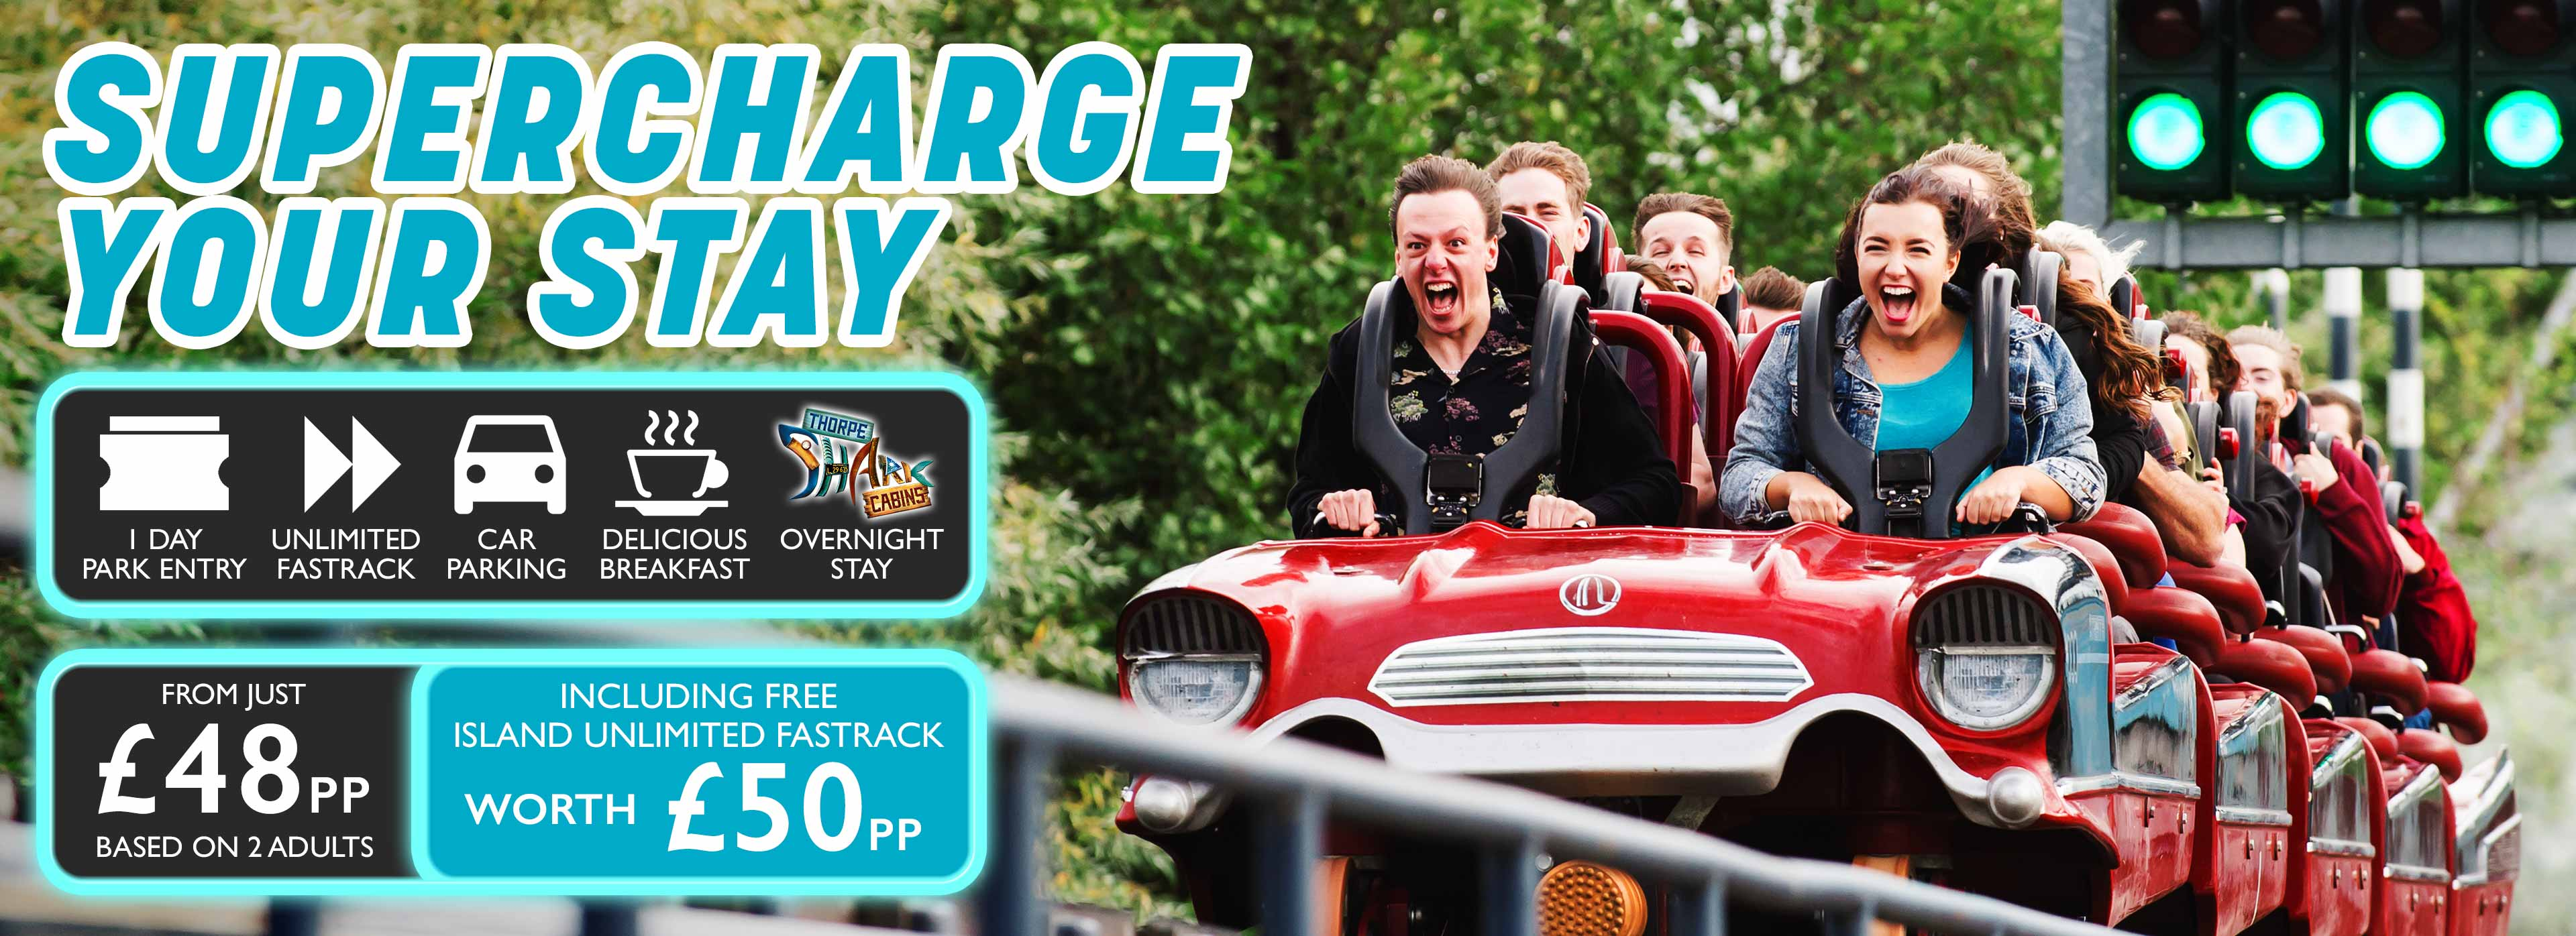 Supercharge your stay at Thorpe Park